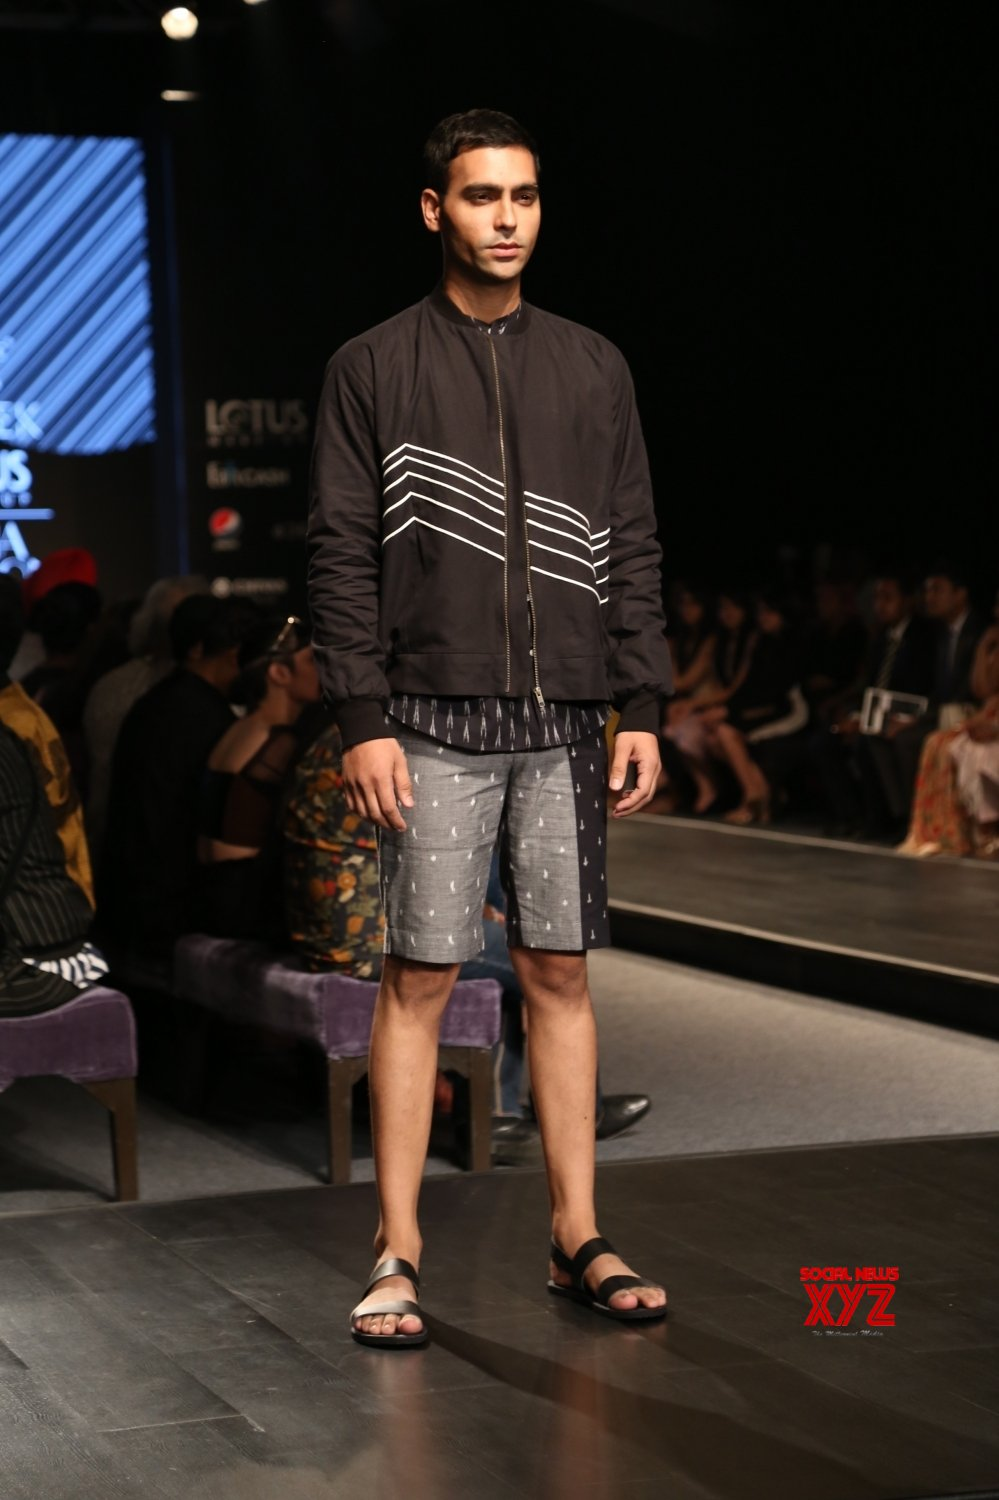 New Delhi: Lotus Make - up India Fashion Week - Day 4 - Bareek's collection showcased #Gallery